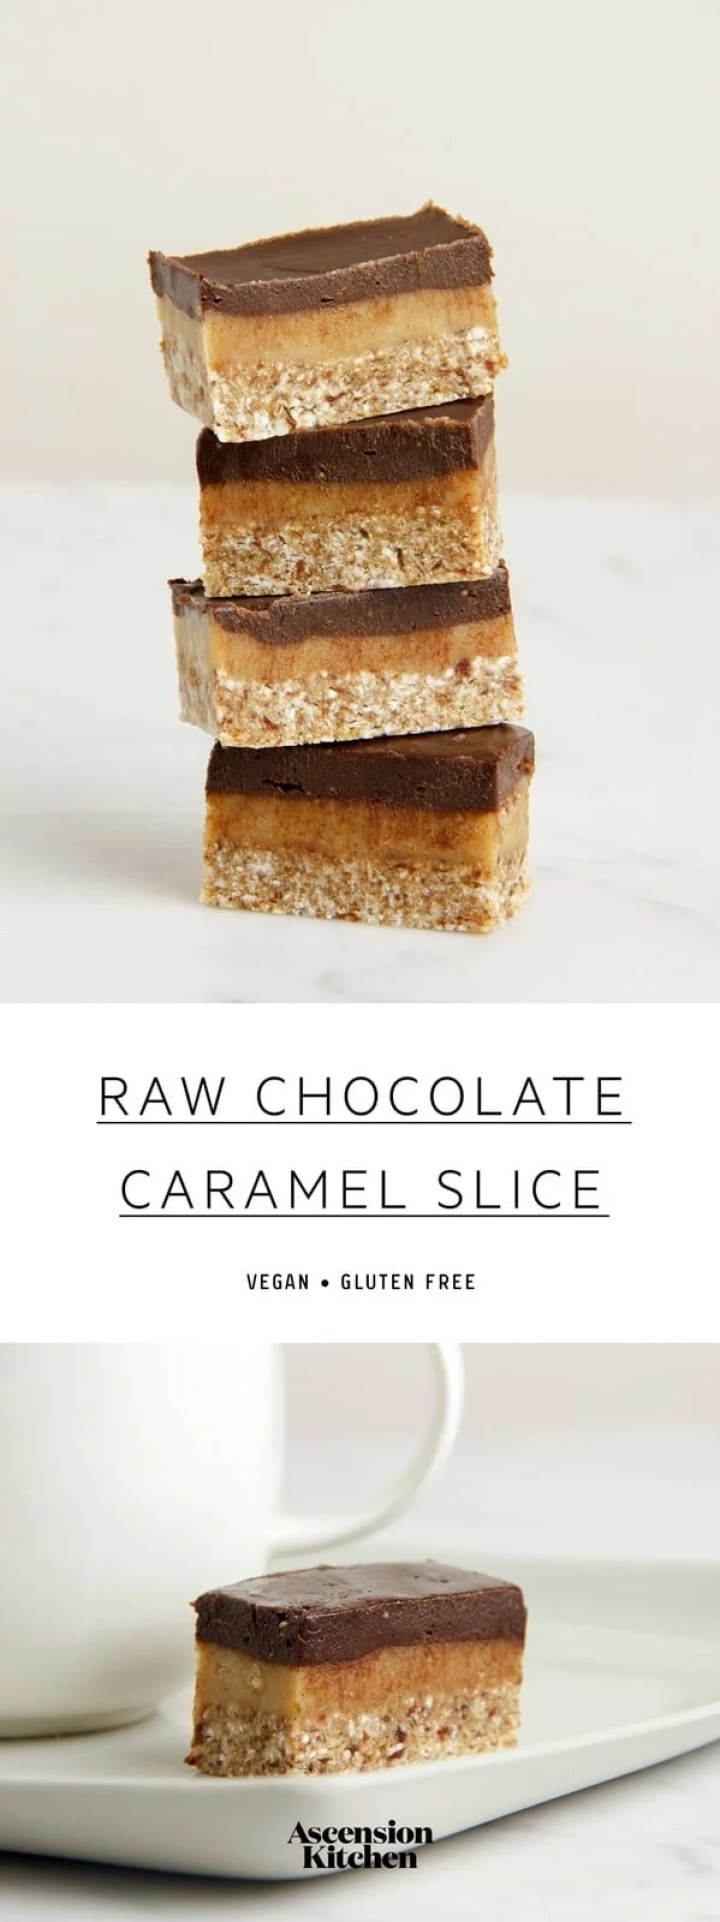 My World famous Raw Chocolate Caramel Slice. This lush raw dessert has a buckwheat and coconut 'biscuit' base, with a caramel filling made from macadamia nuts, cashew, maple and lemon, with a thick and dreamy chocolate icing. #vegantreats #vegandesserts #vegansweet #vegandessertideas #rawvegan #caramelslice #dairyfreedesserts #glutenfreedesserts #rawcaramelslice #caramelslicevegan #vegancaramel #healthydessertideas #dessertideas #treatideas #chocolatecaramelslice #unbakeslice #AscensionKitchen // Pin to your own inspiration board //